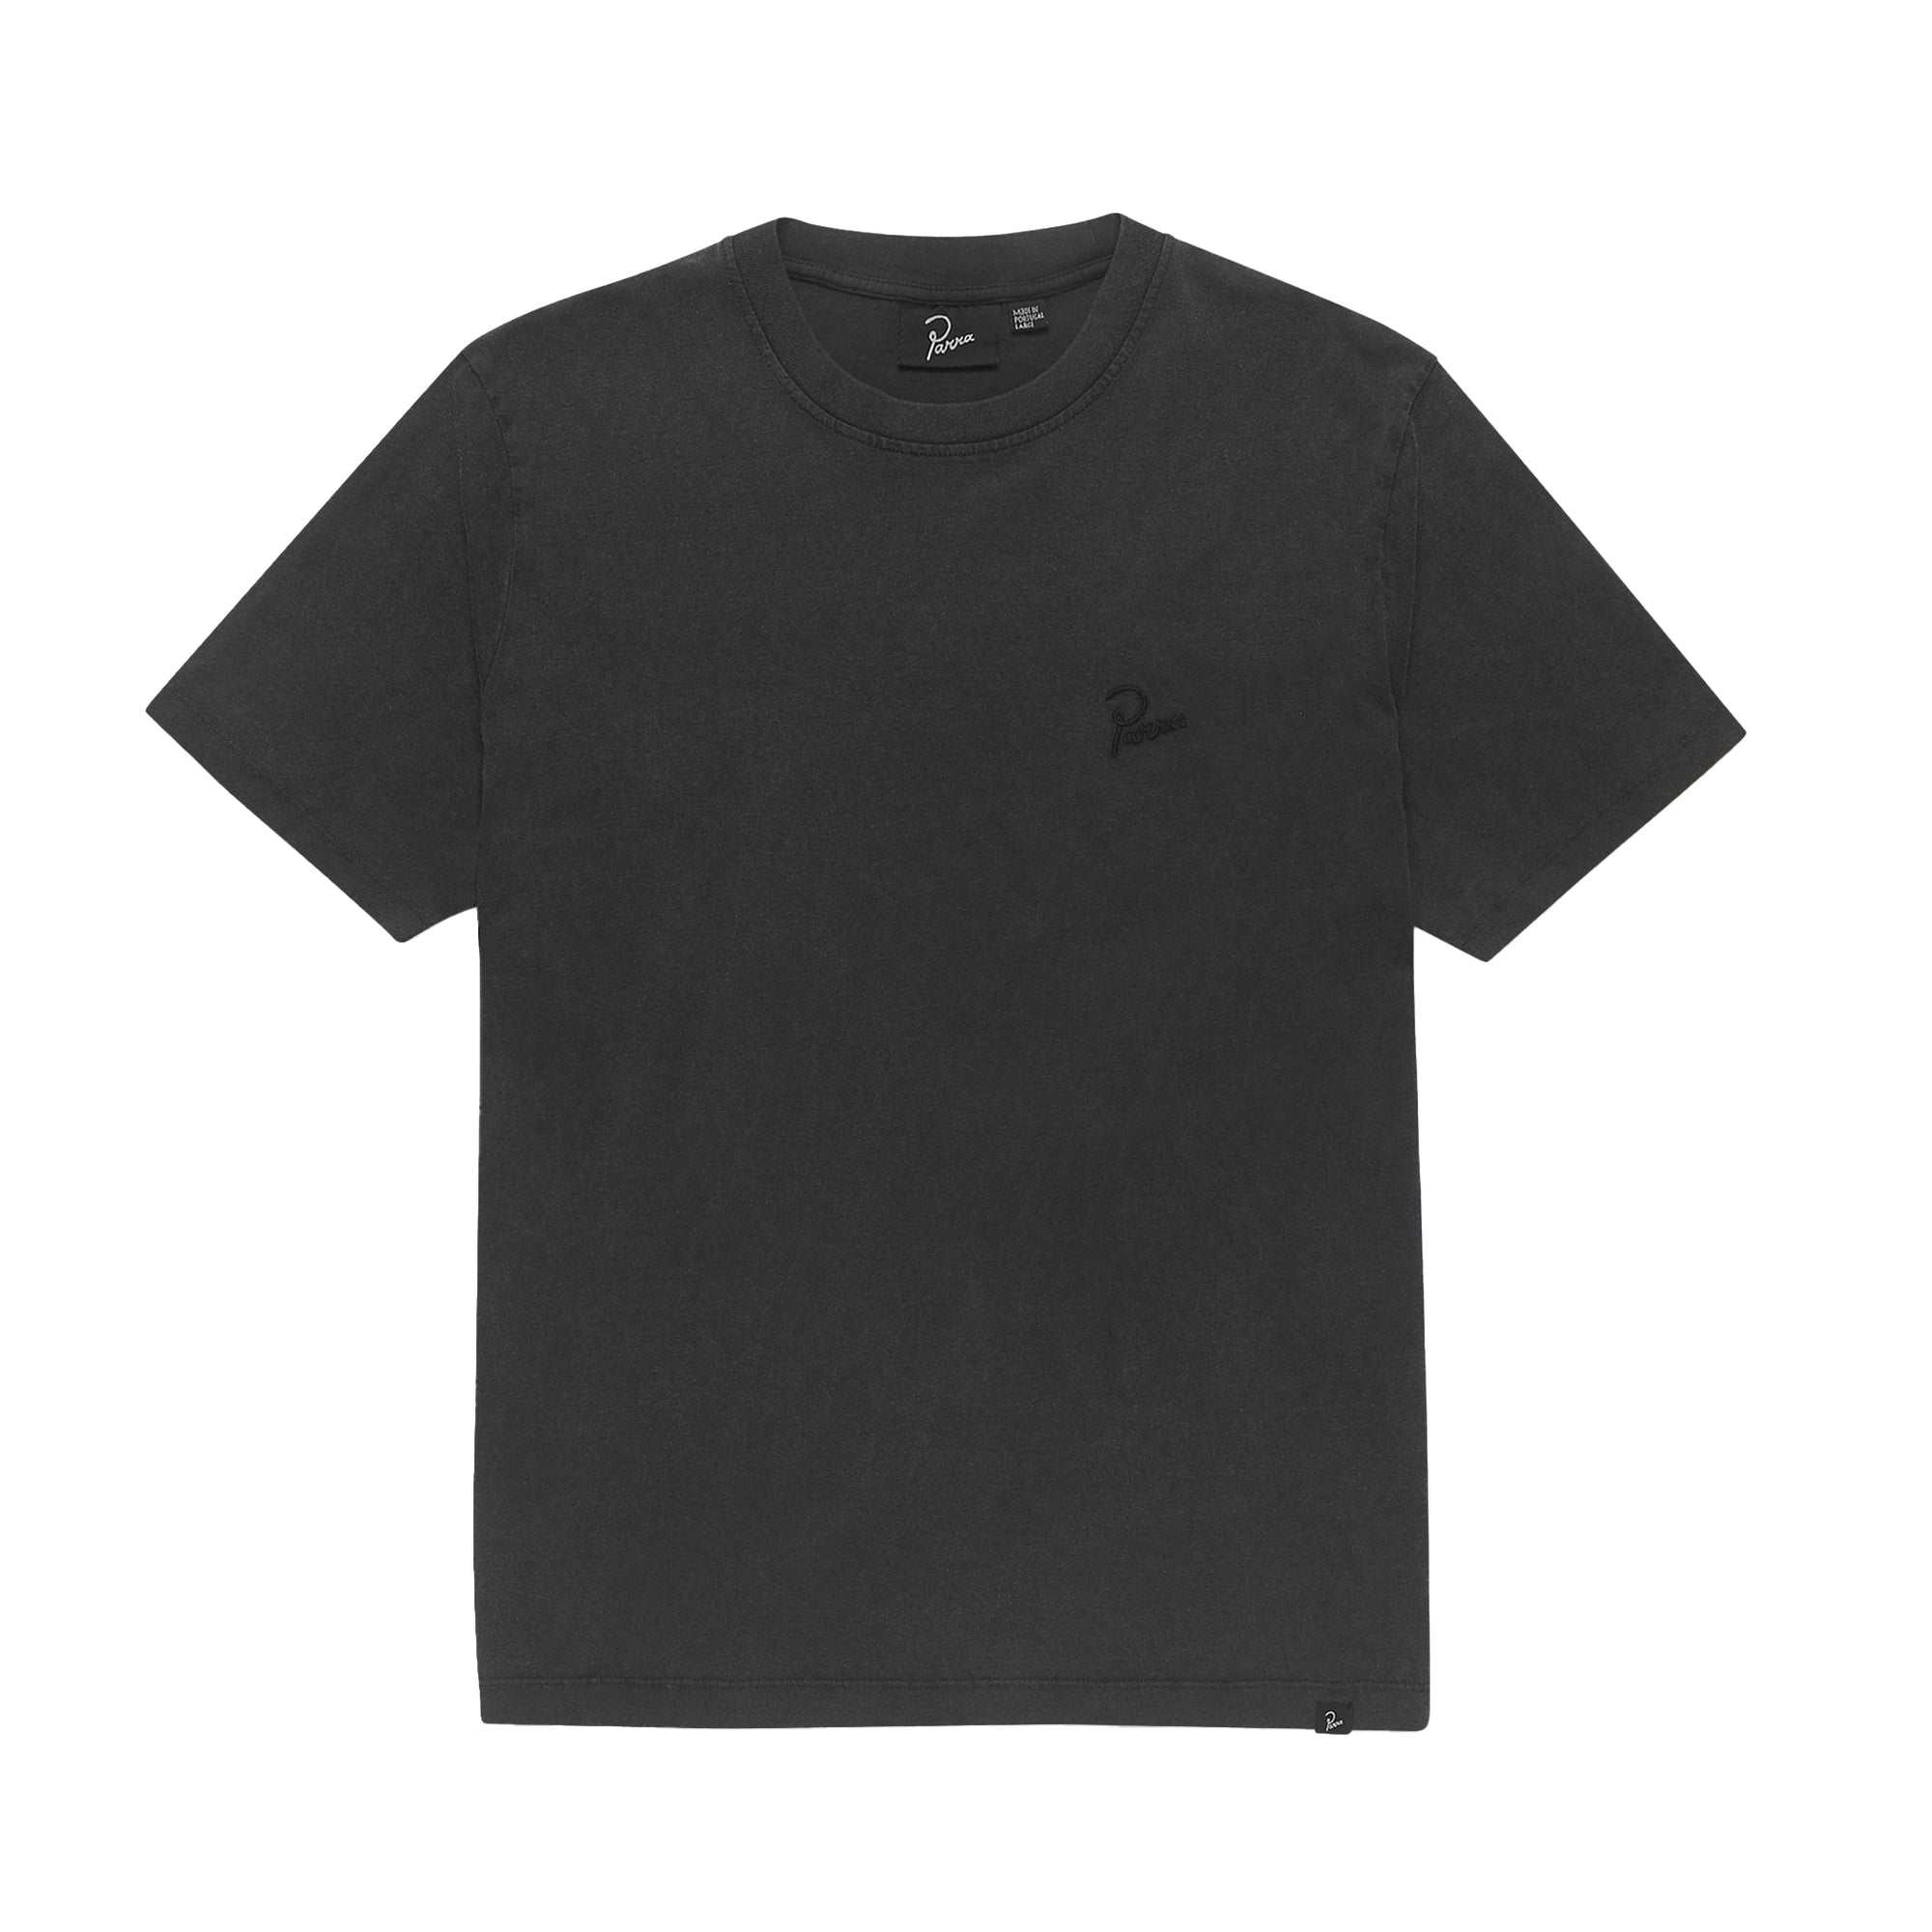 Parra Washed Out Logo T-Shirt: Washed Black - The Union Project